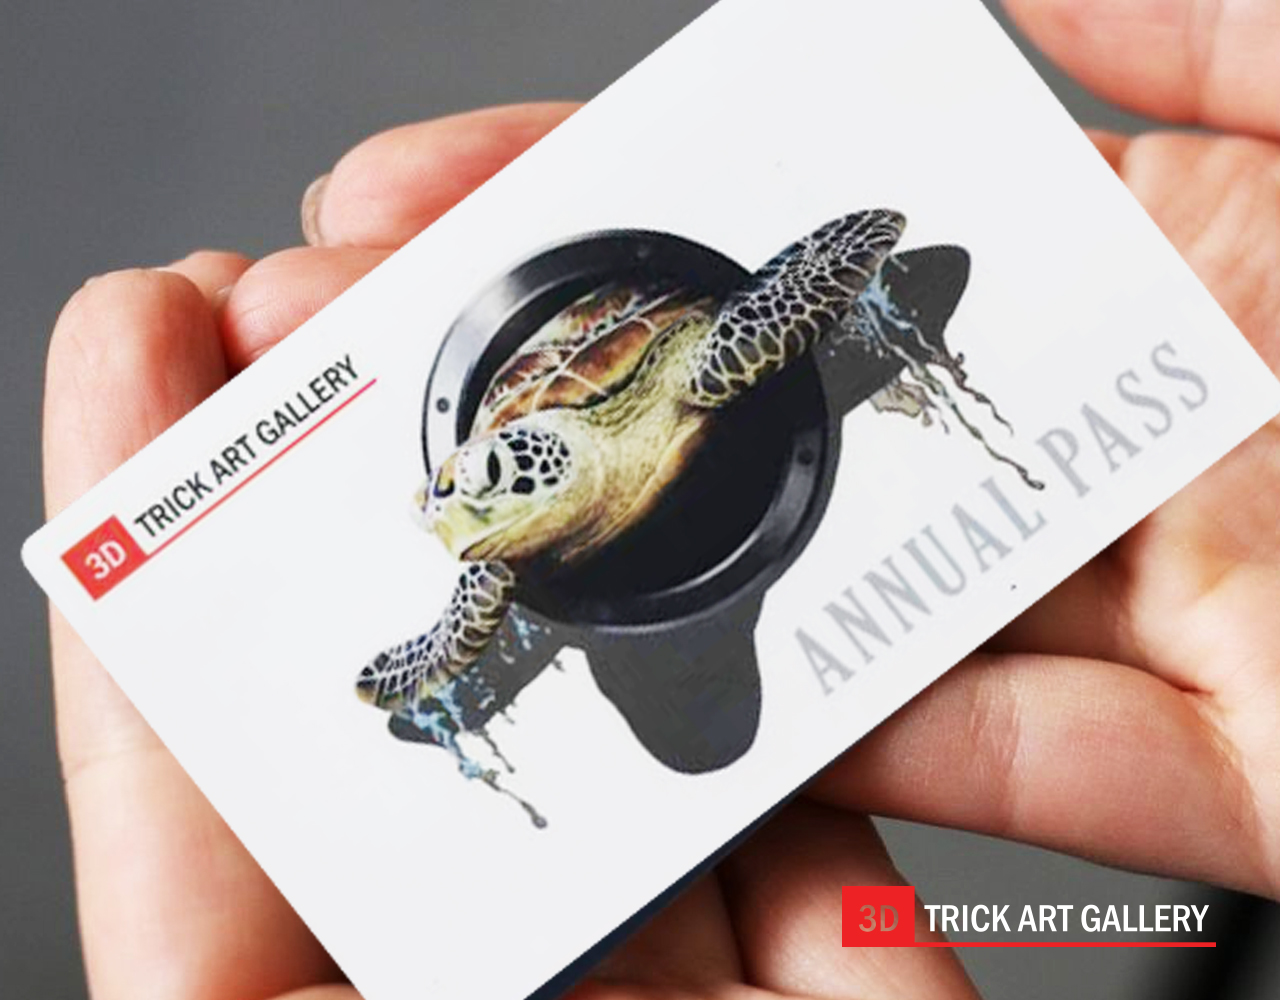 3D Trick Art Gallery annual pass